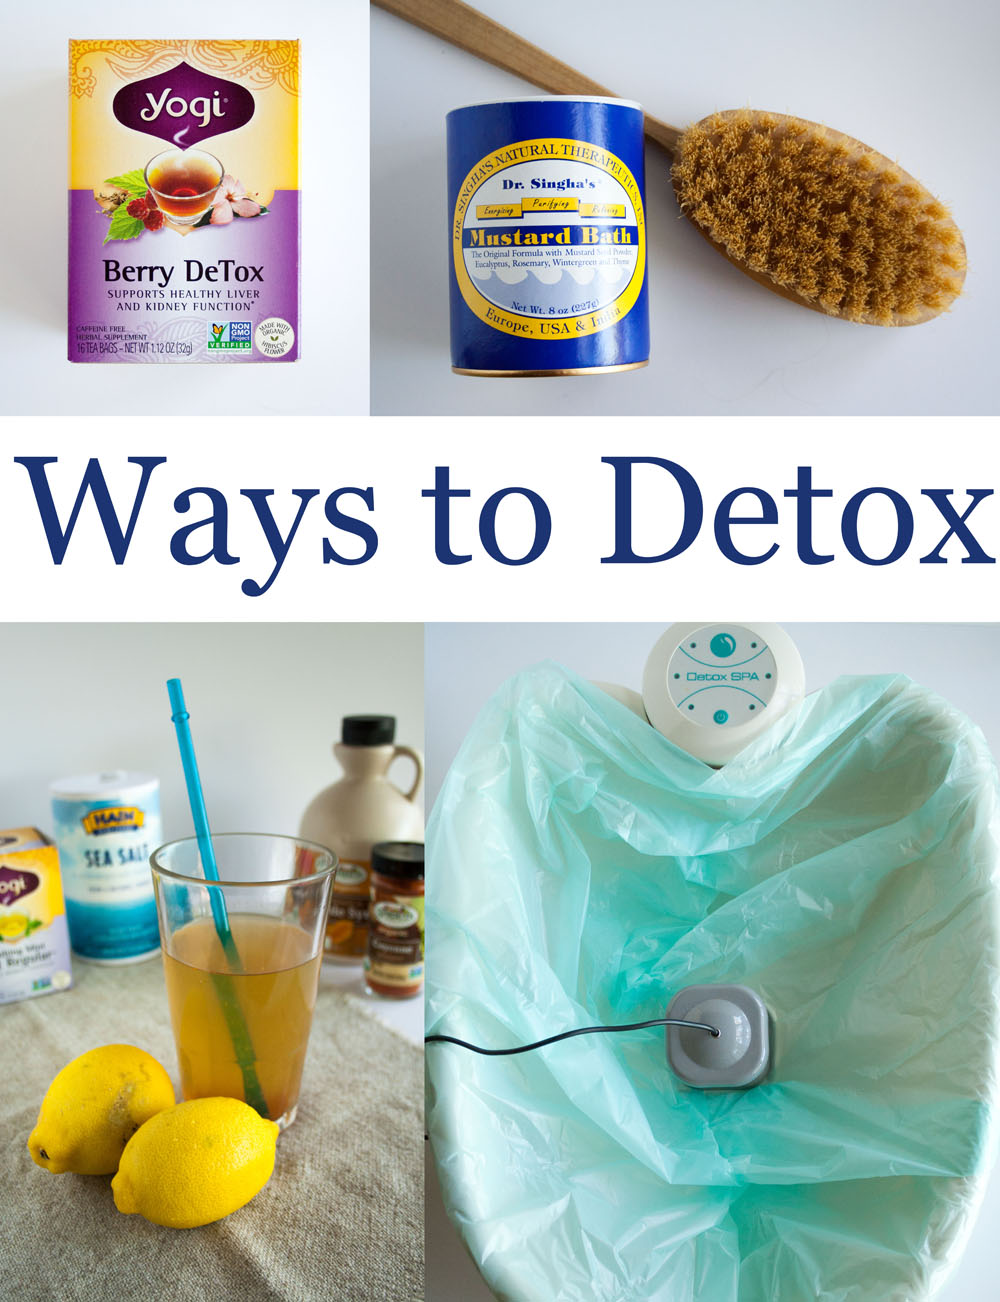 """Ways to Detox"" written on collage photo with tea, foot bath, dry brush, and lemonade drink."